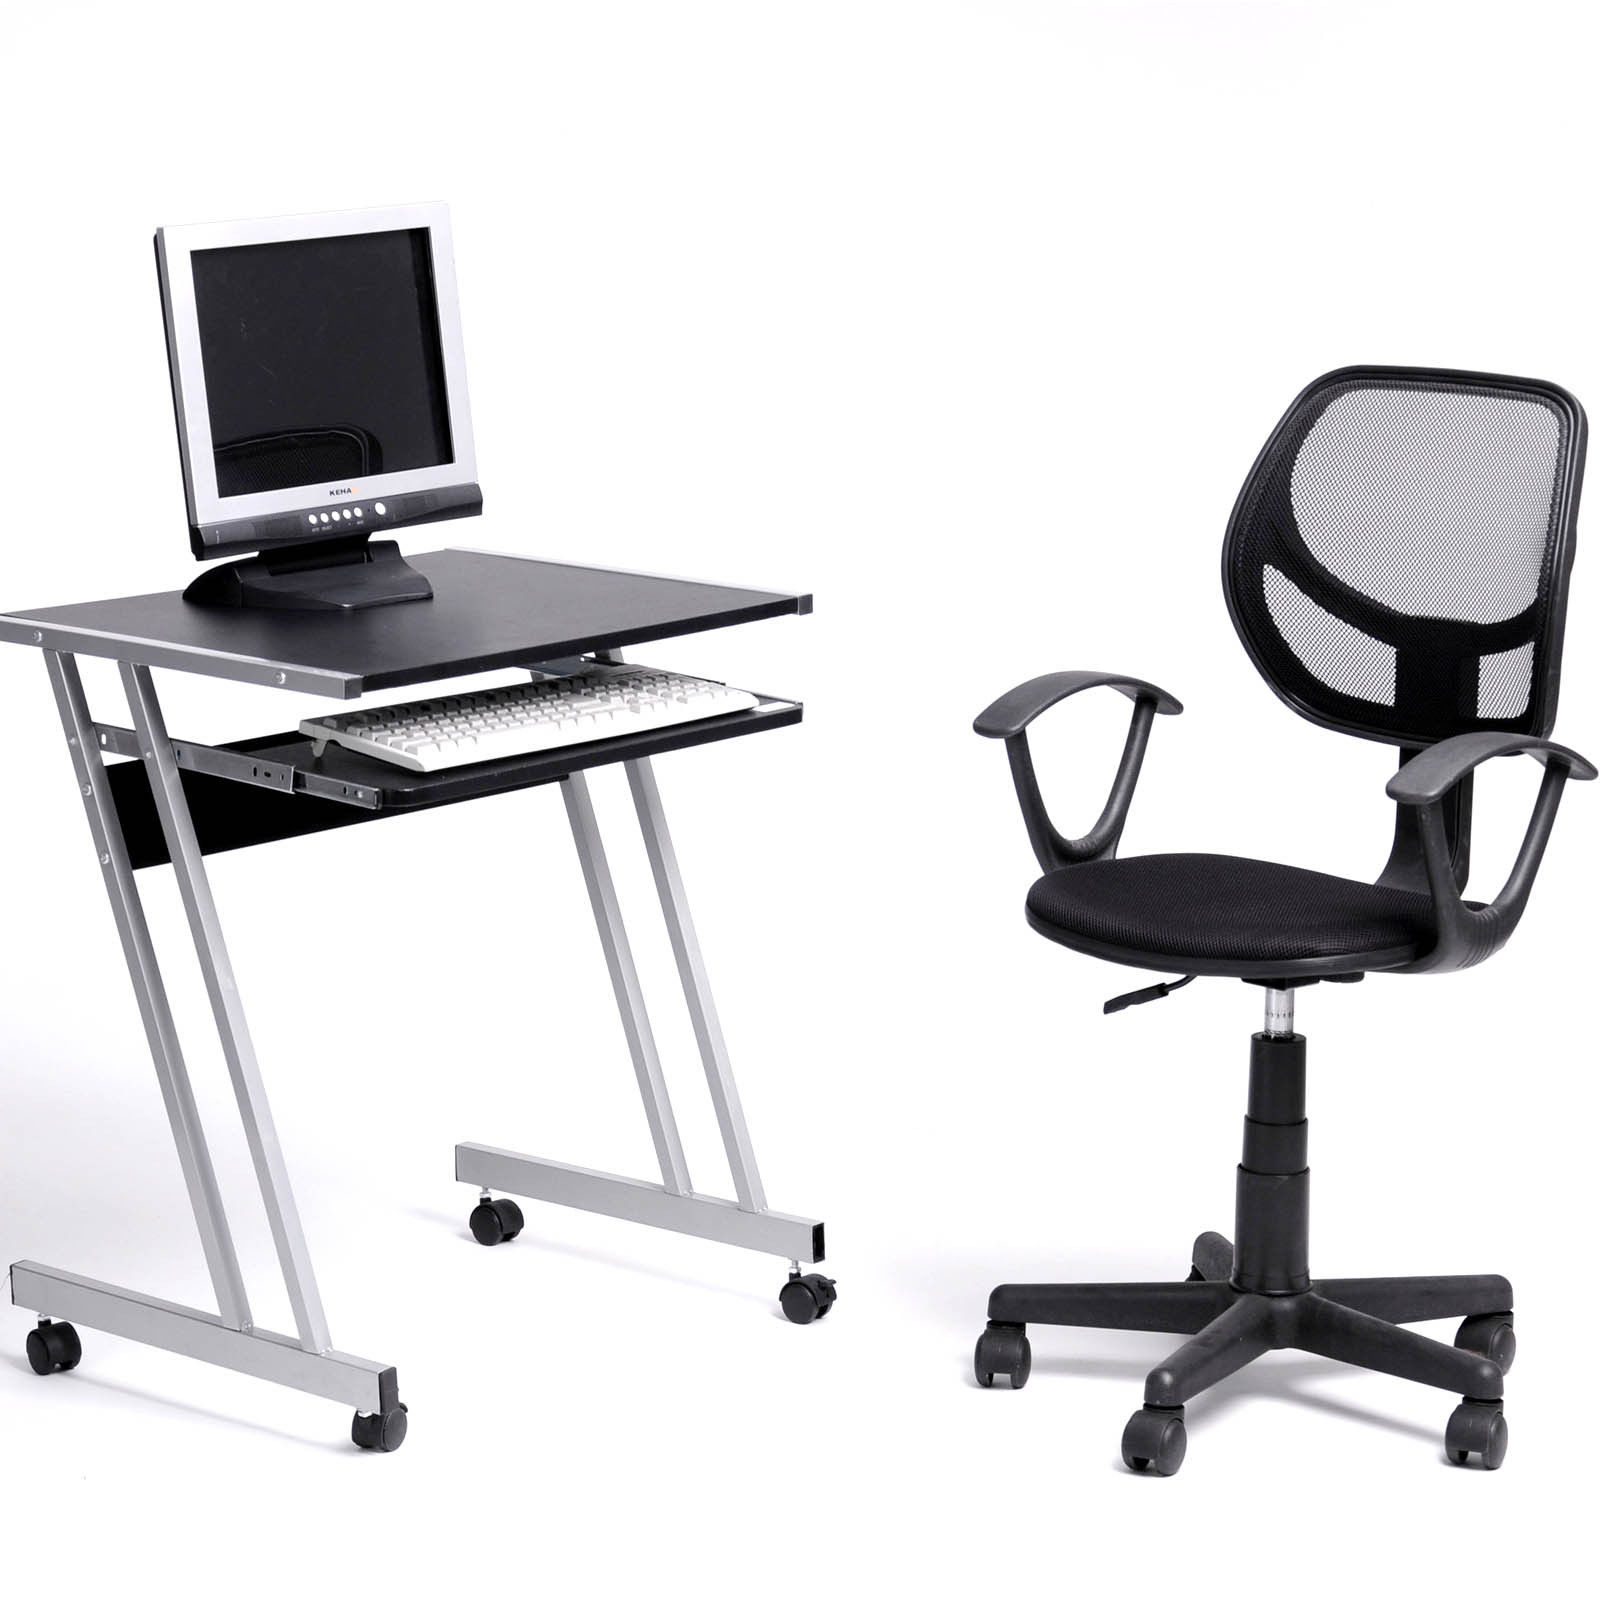 office chair with adjustable arms white wishbone ergonomic mid back home task computer